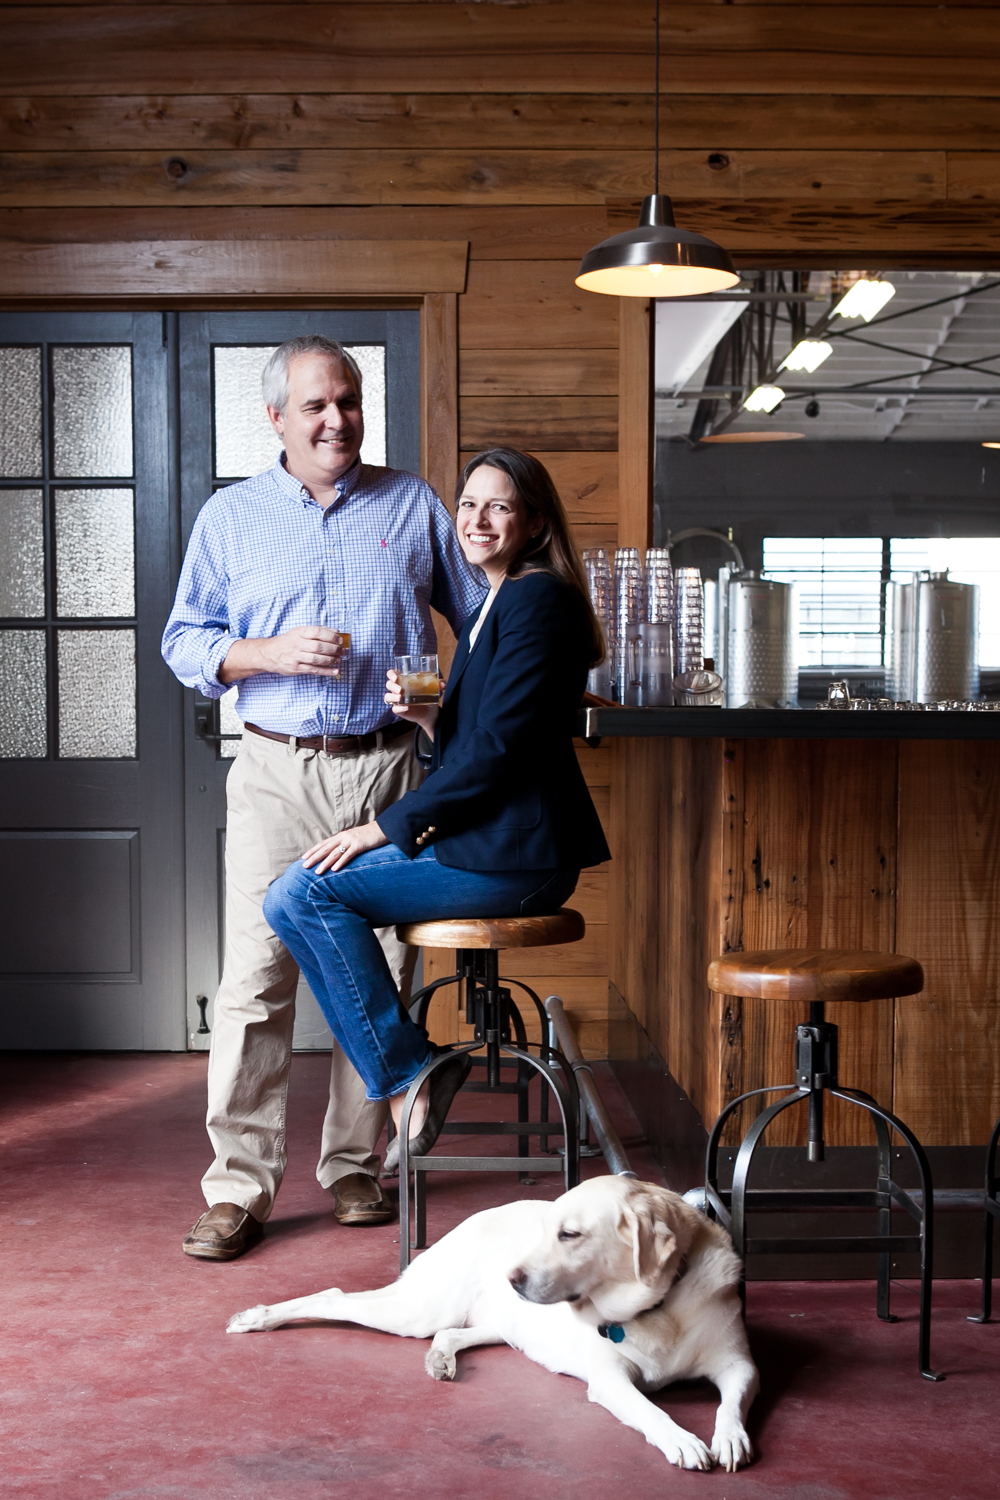 Scott Blackwell and Ann Marshall of High Wire Distilling Co.